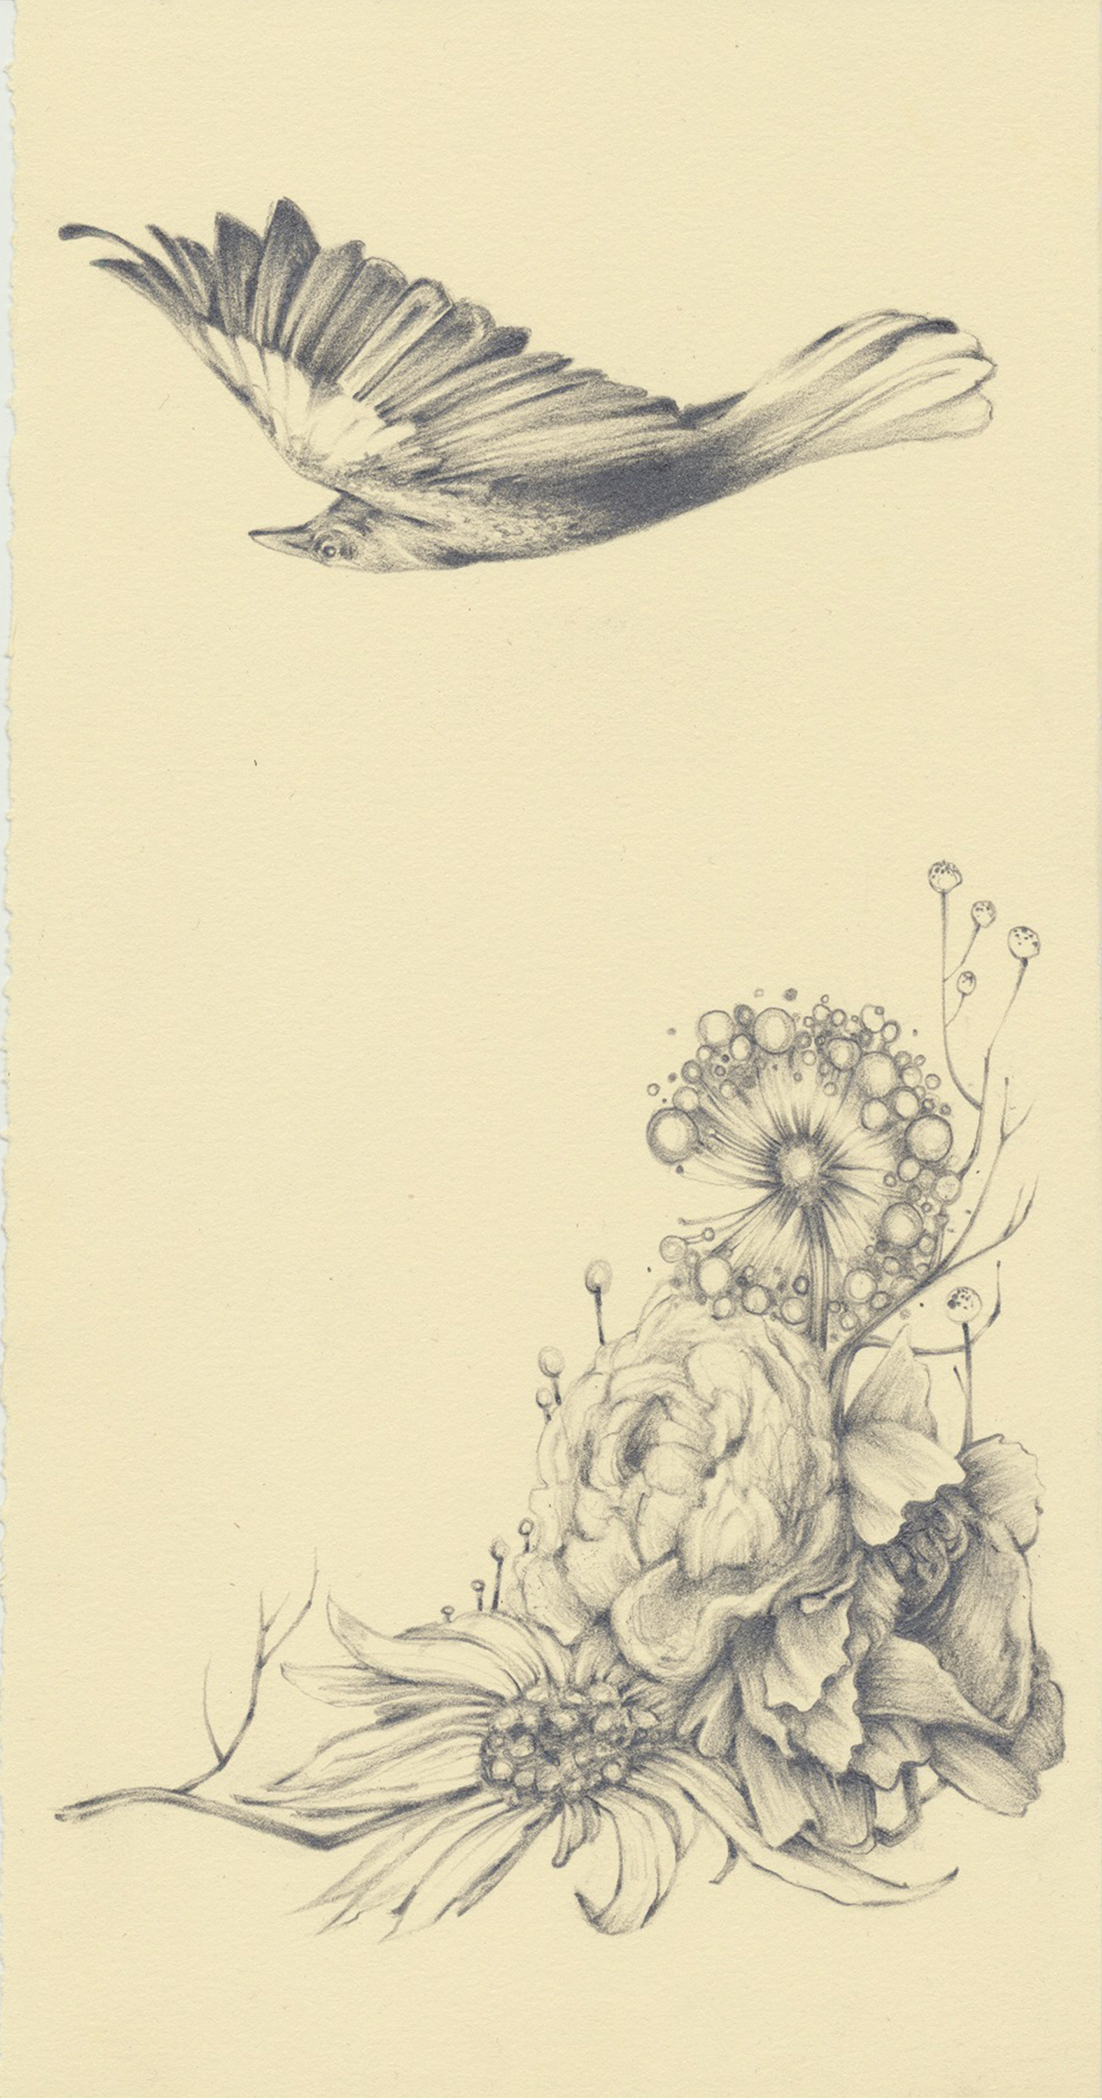 """the crow flies - graphite on paper - 7""""x11"""""""